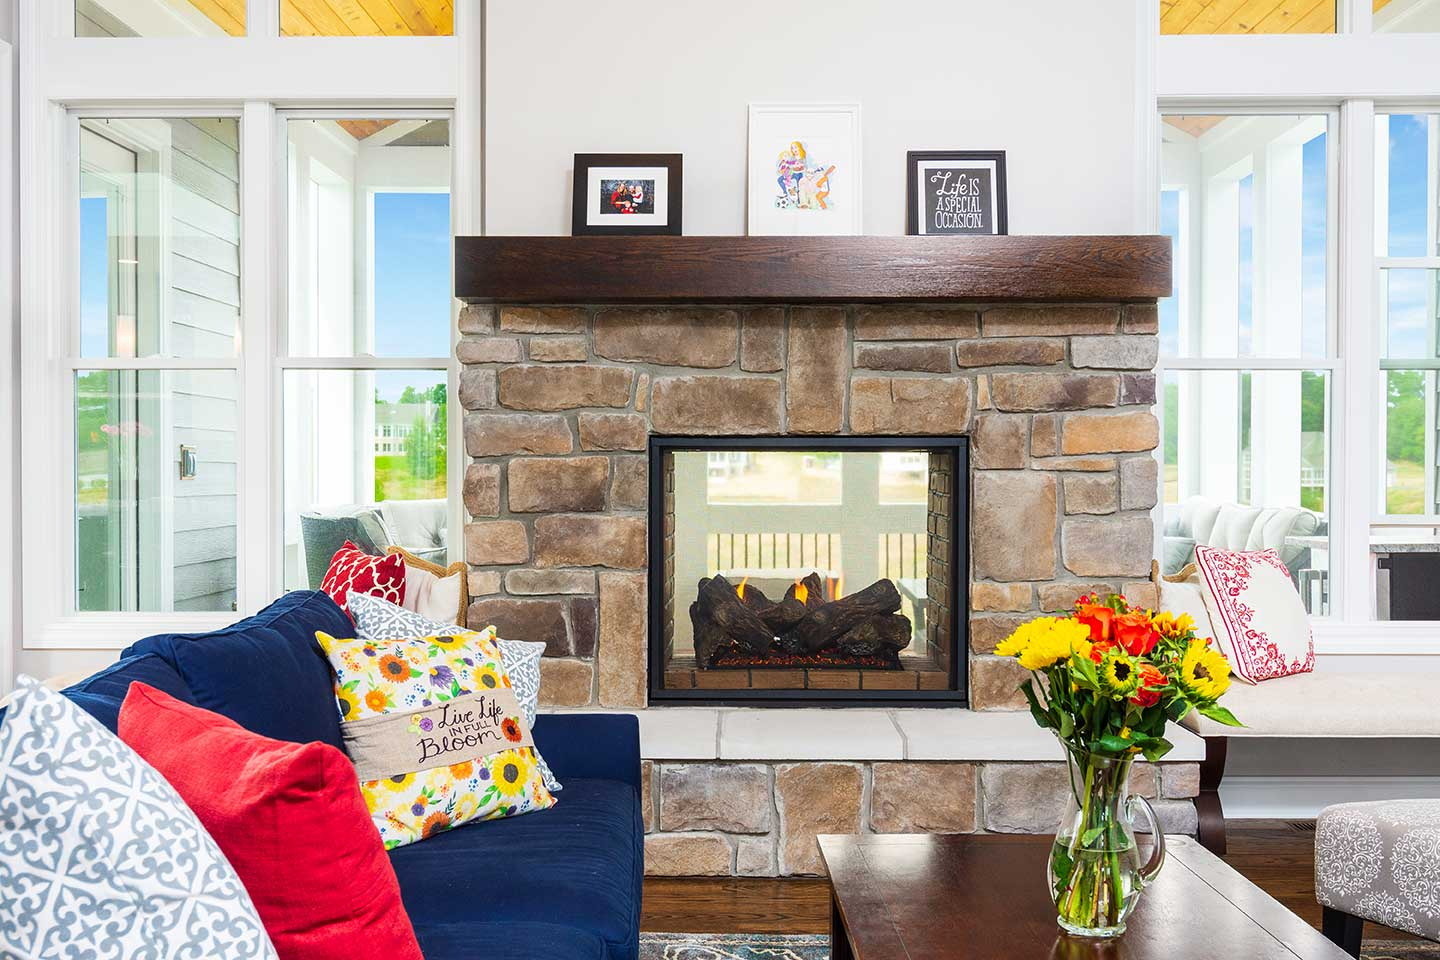 photo of fireplace and mantlepiece with glass panel showing fireplace opening onto indoor-outdoor second floor sun room